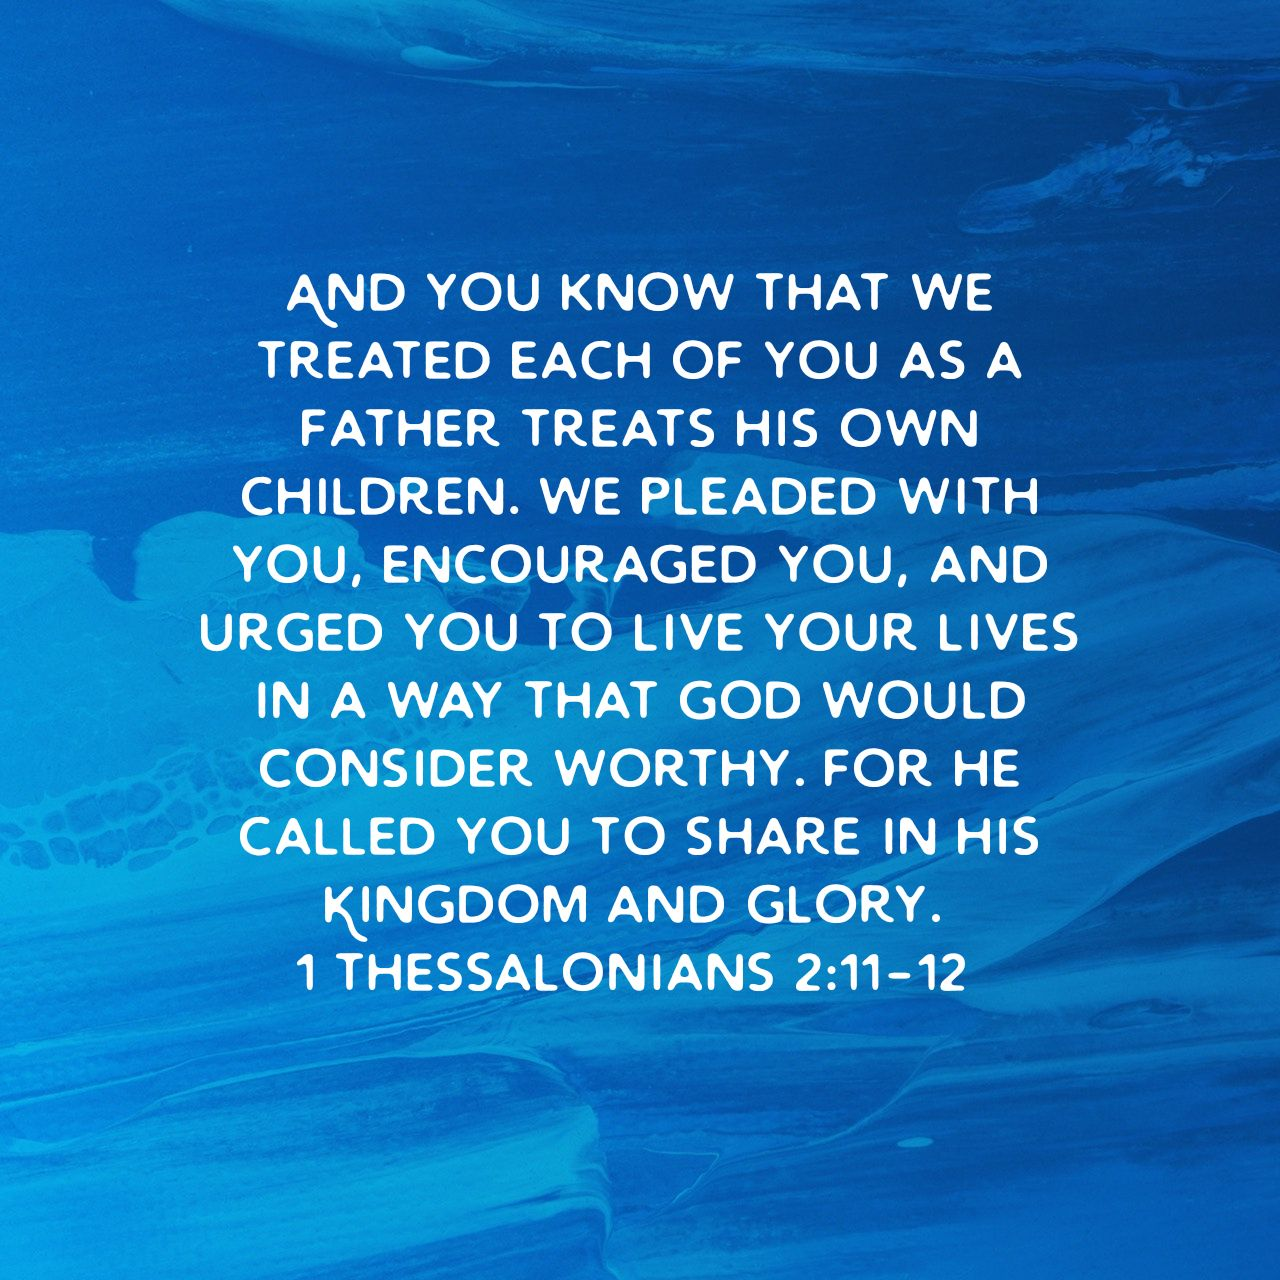 And you know that we treated each of you as a father treats his own children. We pleaded with you, encouraged you, and urged you to live your lives in a way that God would consider worthy. For he called you to share in his Kingdom and glory. - 1 Thessalonians 2:11‭-‬12 NLT